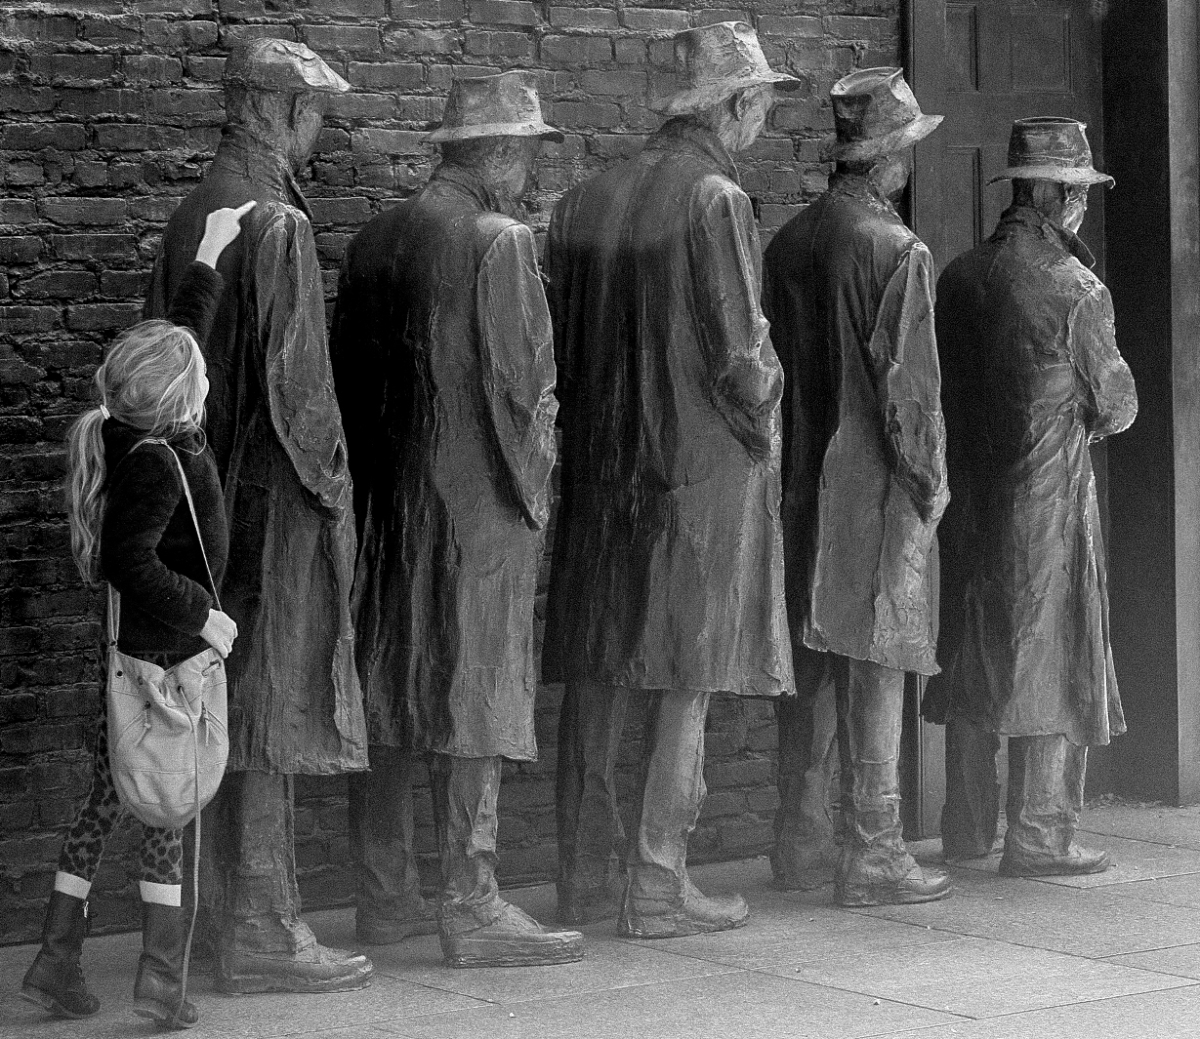 Girl stands in the back of statues waiting in a soup kitchen line at the FDR Memorial in Washington DC. Not So SAHM